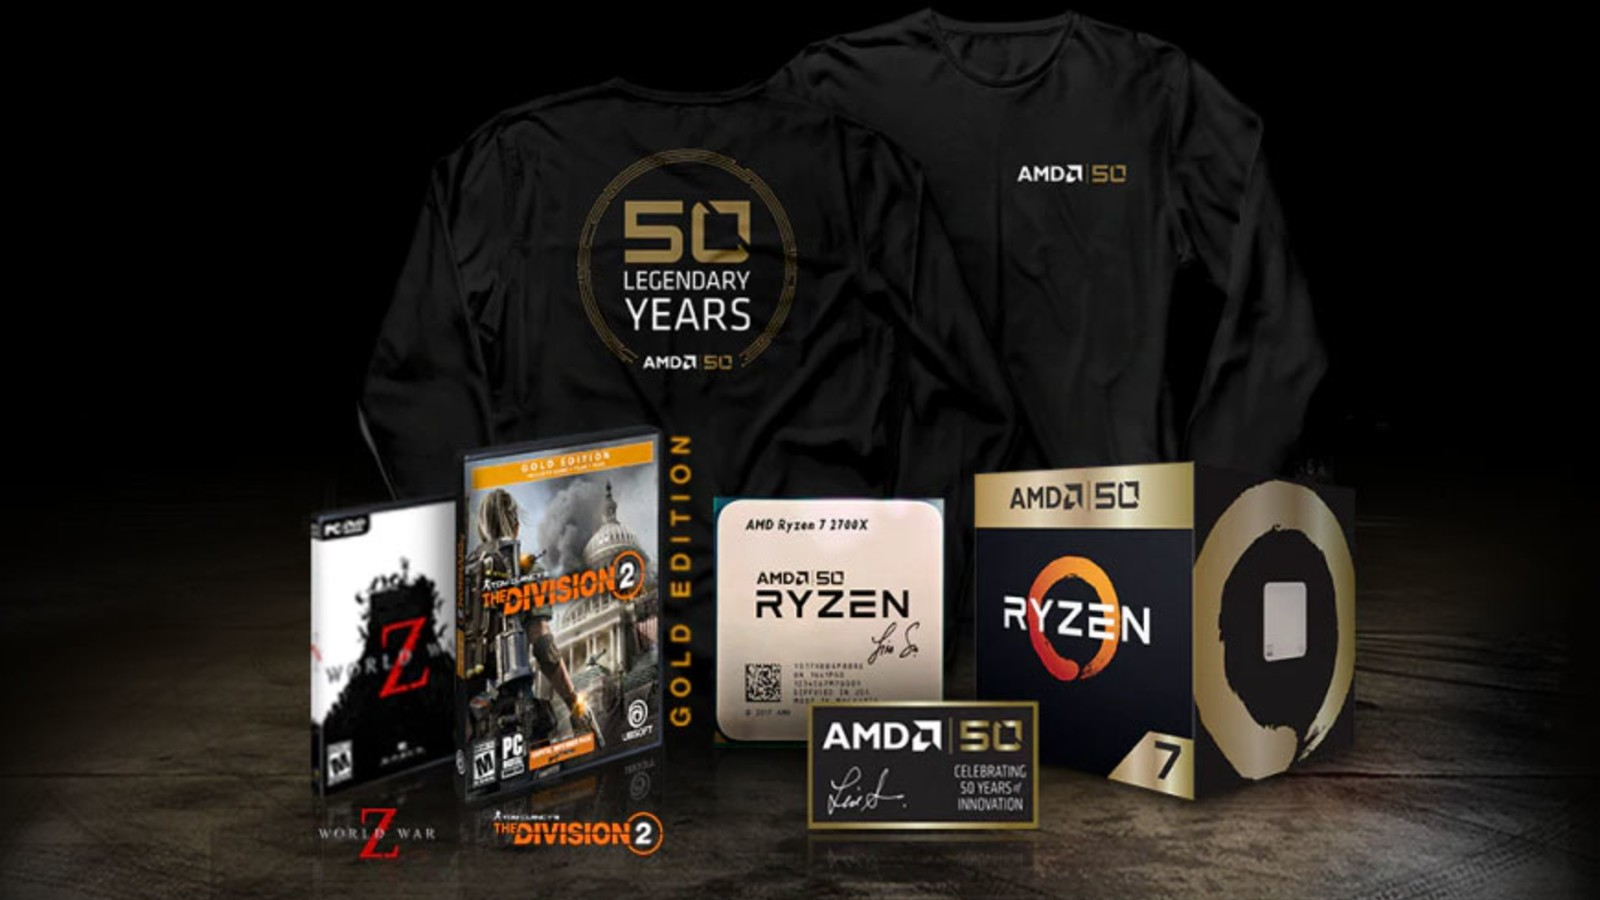 Happy 50th Anniversary Amd Matisse Processor Briefly Mentioned On Newegg As Part Of A Prize Draw Notebookcheck Net News